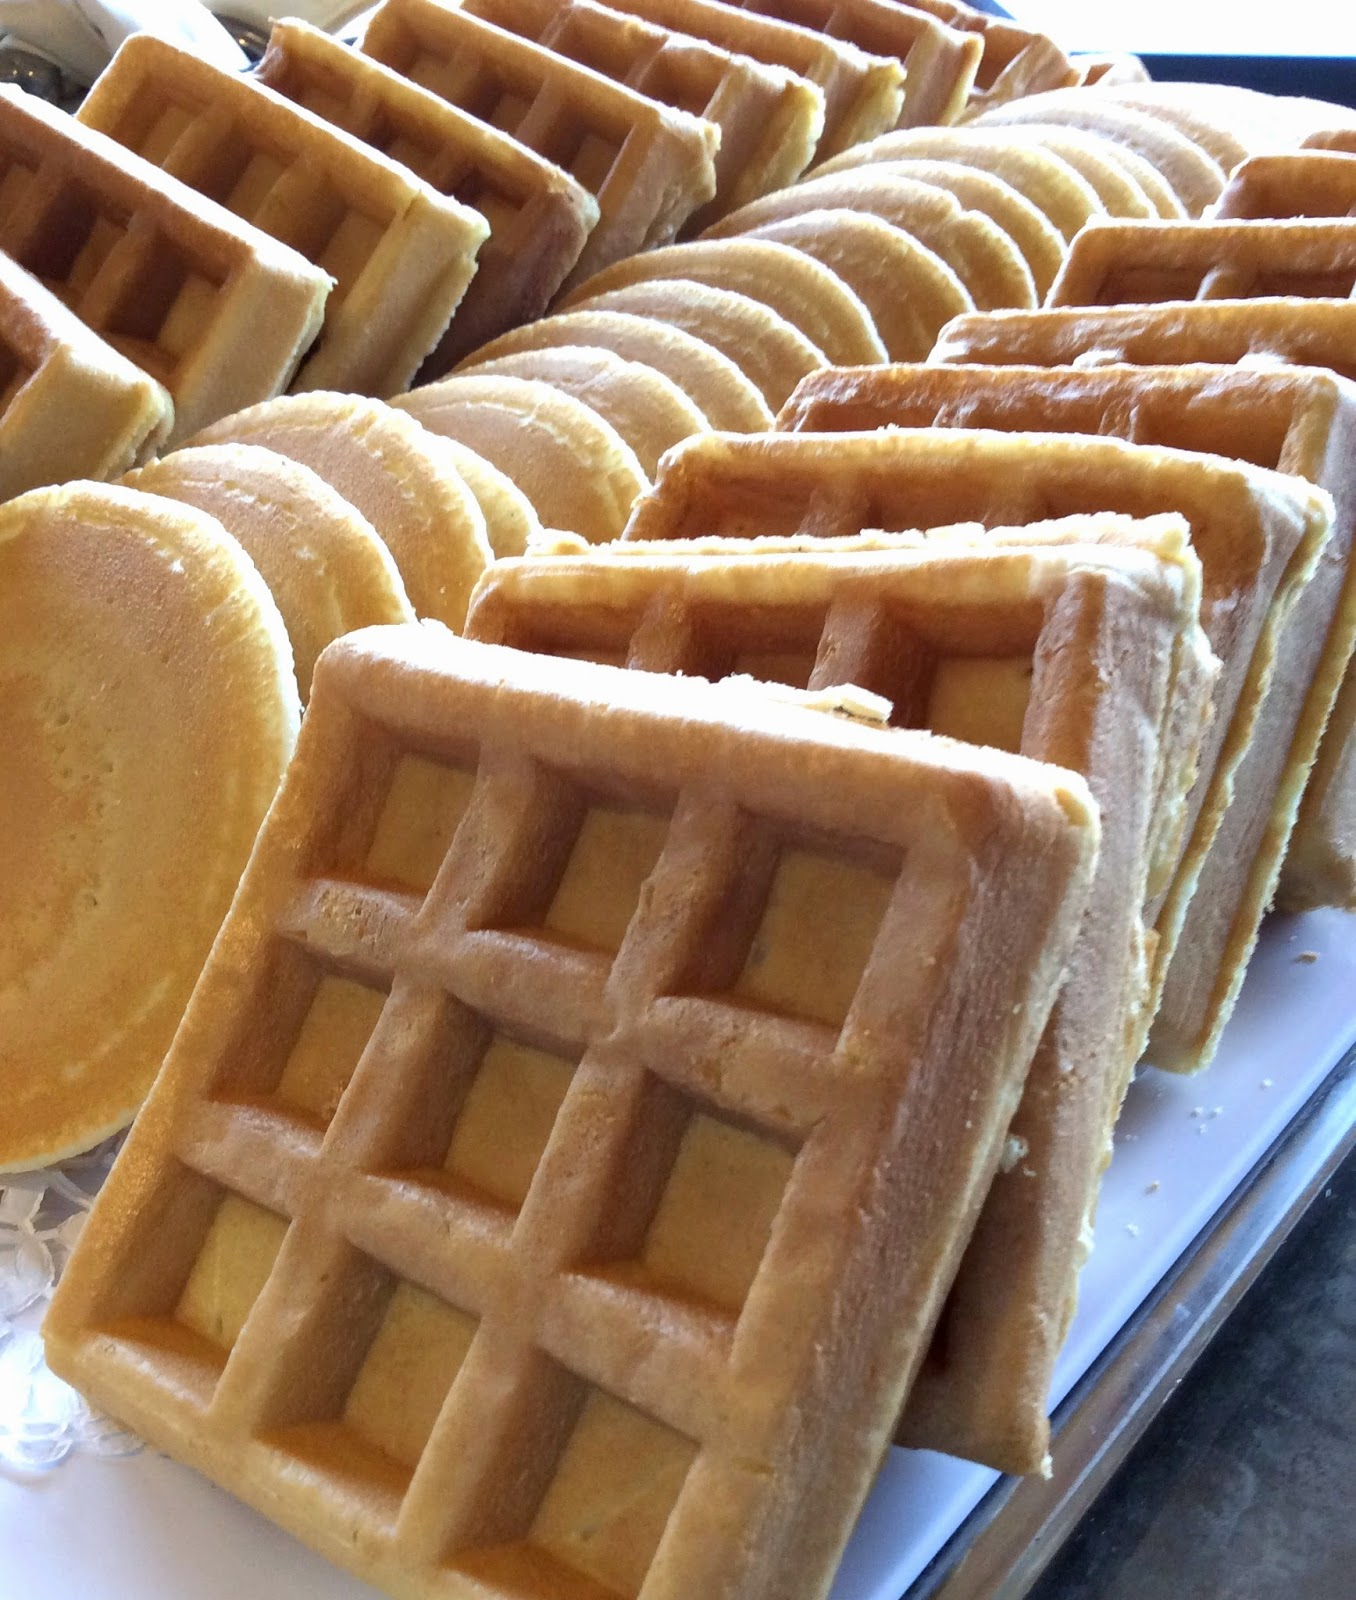 Pancakes, Waffles, Breakfast, Brunch, Addison Conference Center, Culinary Art Catering